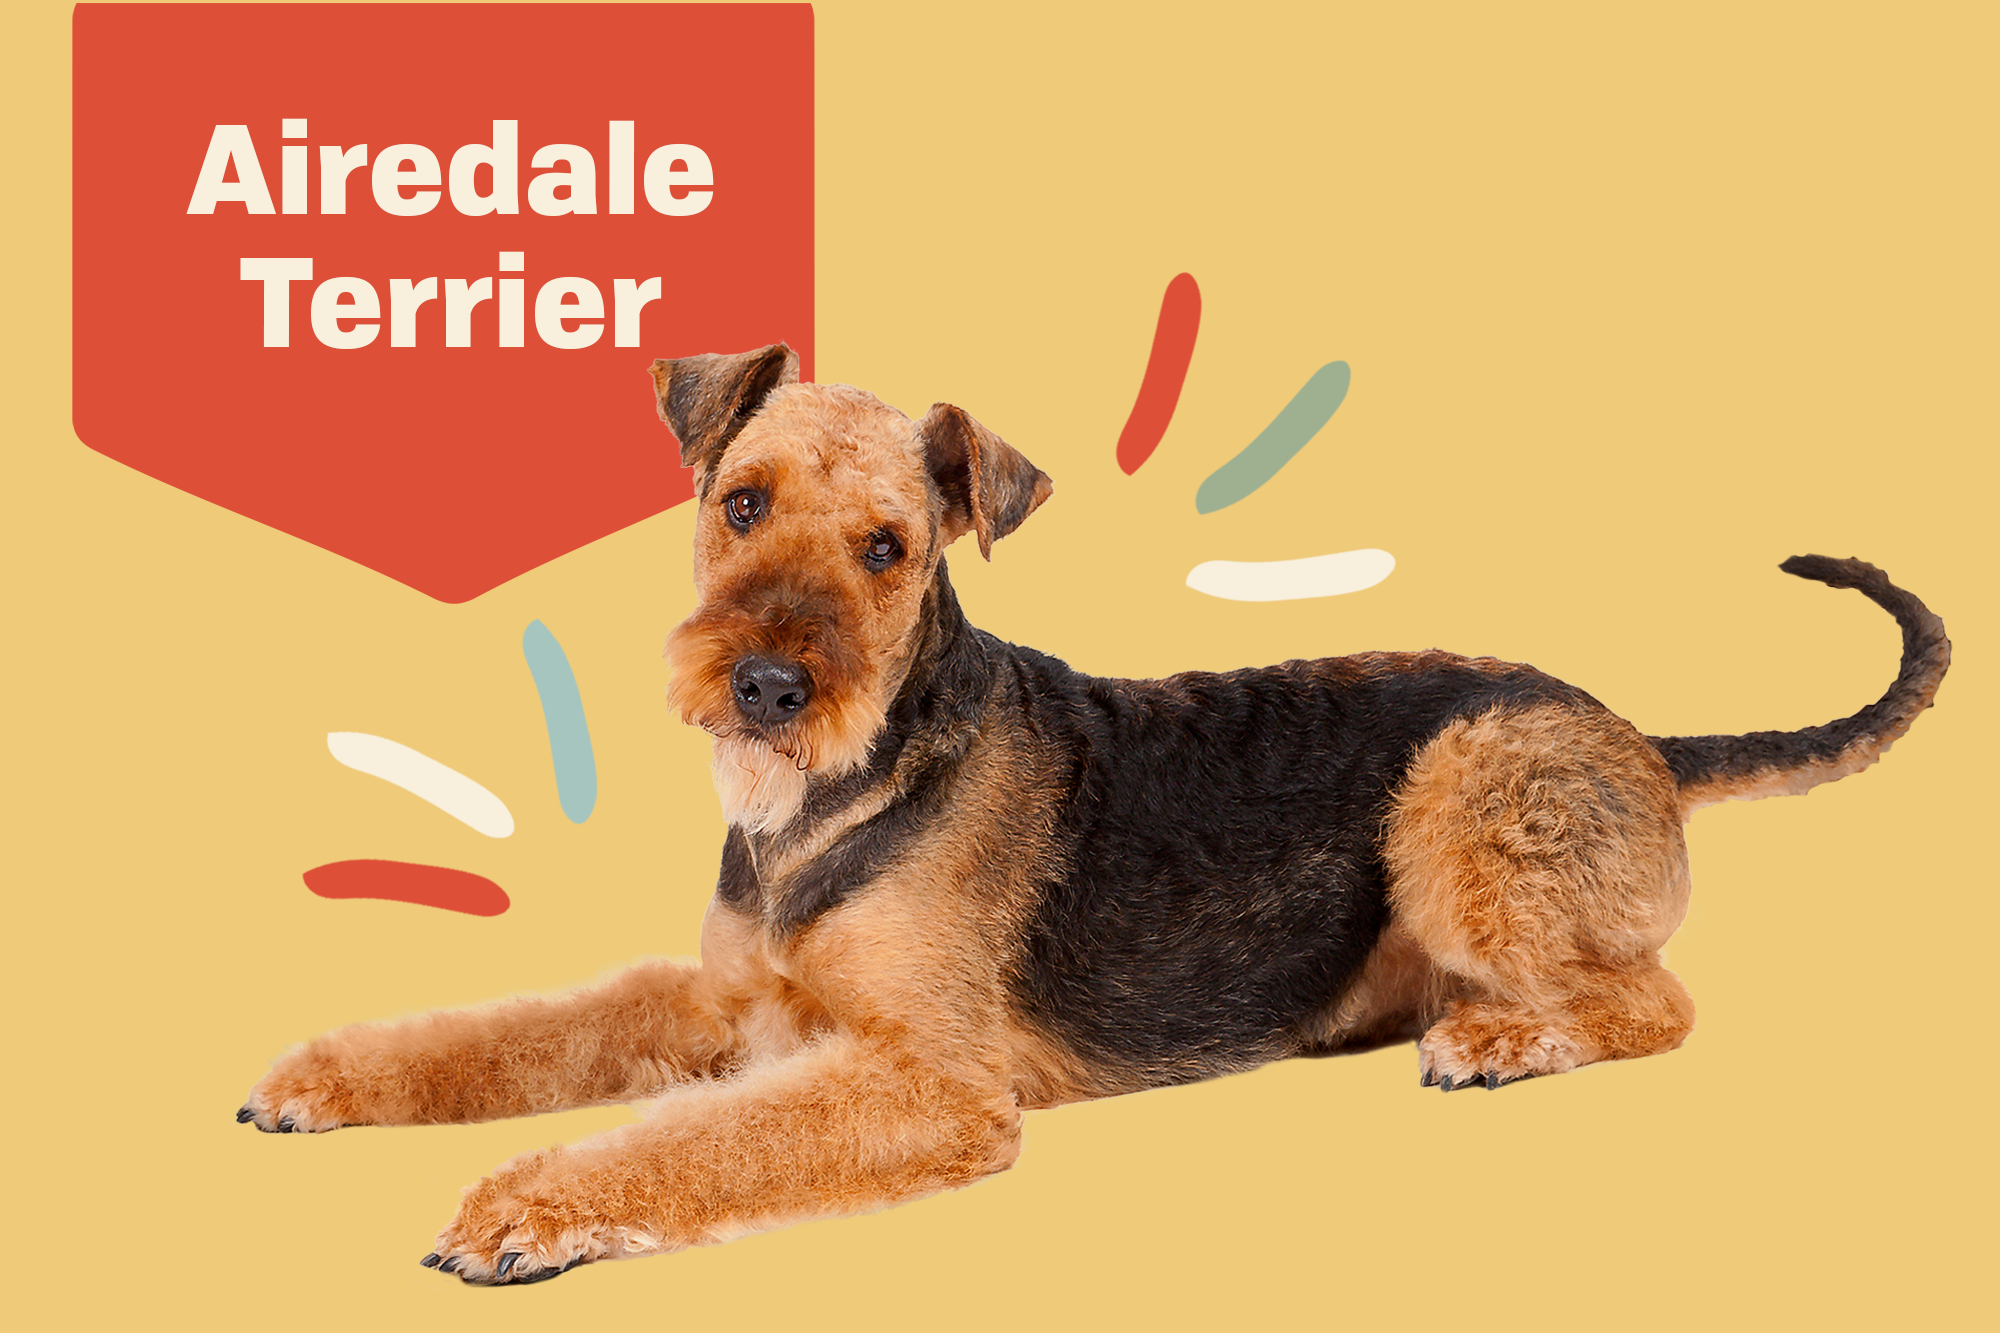 Airedale Terrier Breed Photo